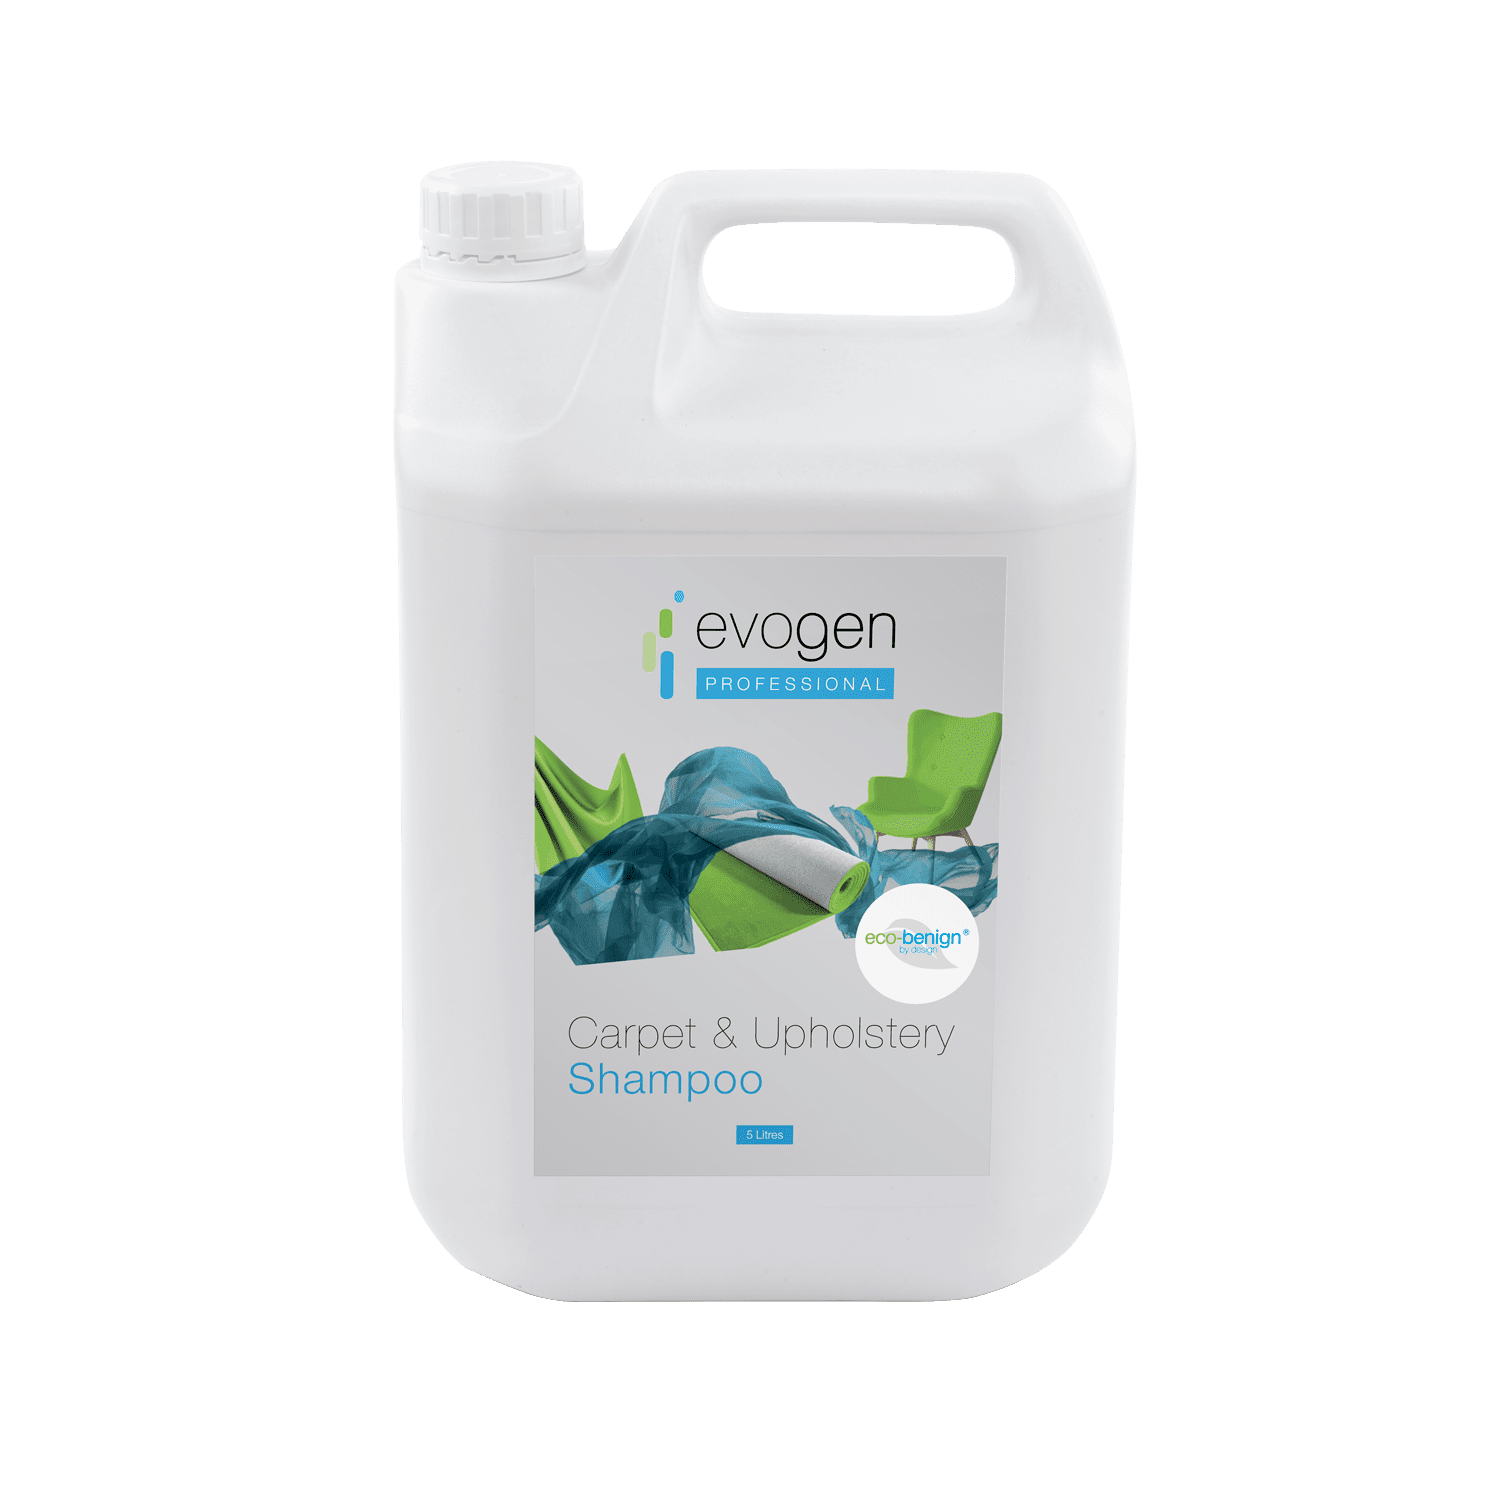 Carpet & Upholstery Shampoo - eco-friendly, professional carpet shampoo. Wholesale carpet cleaner for commercial floors.